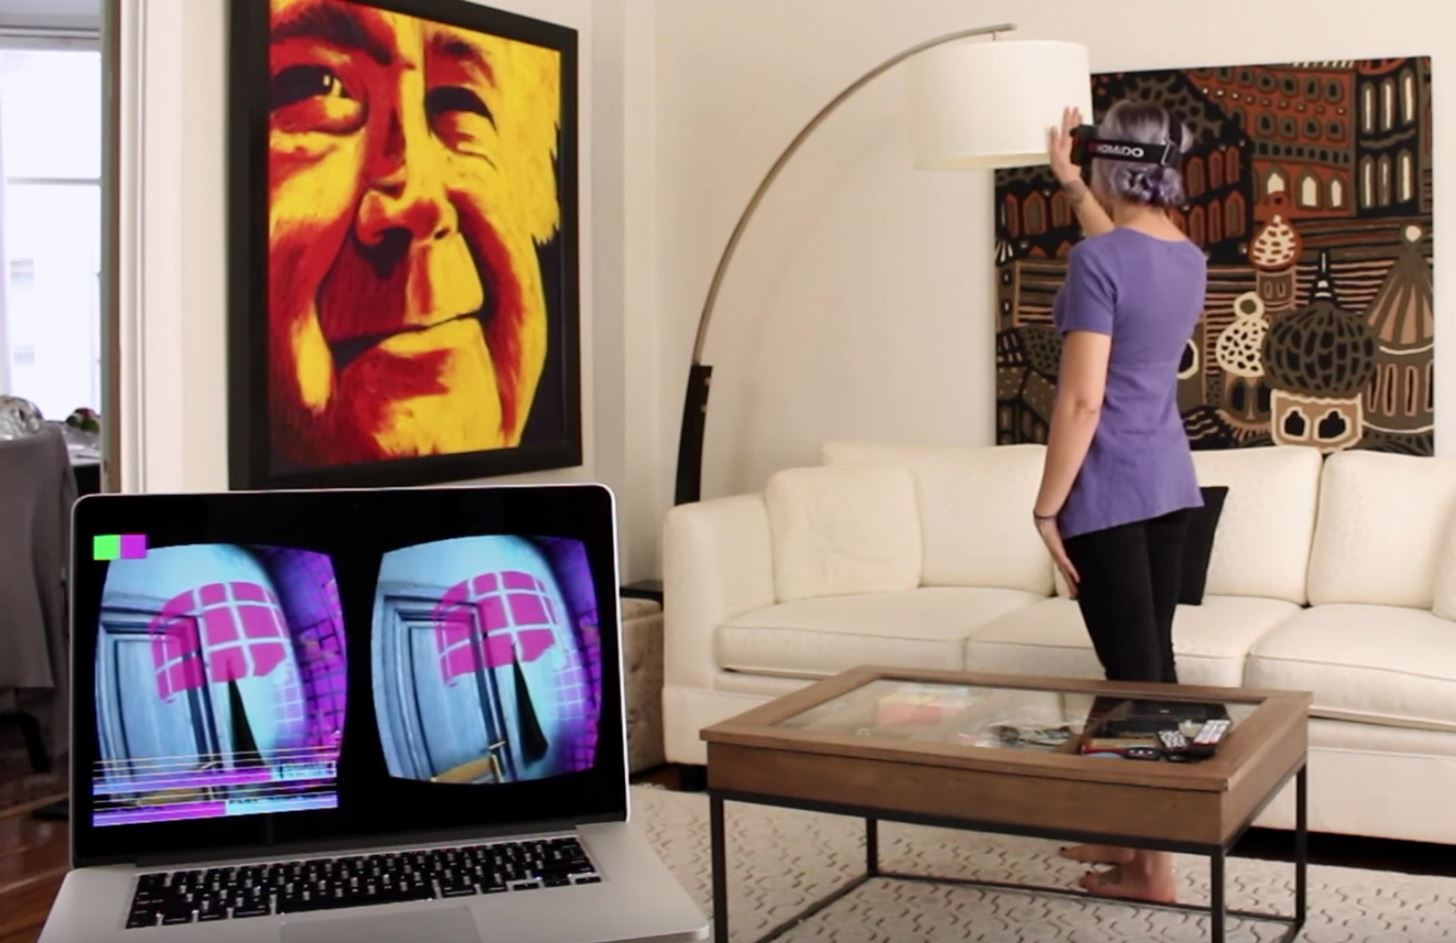 Occipital Wants to Turn iPhones into Mixed Virtual Reality Headsets